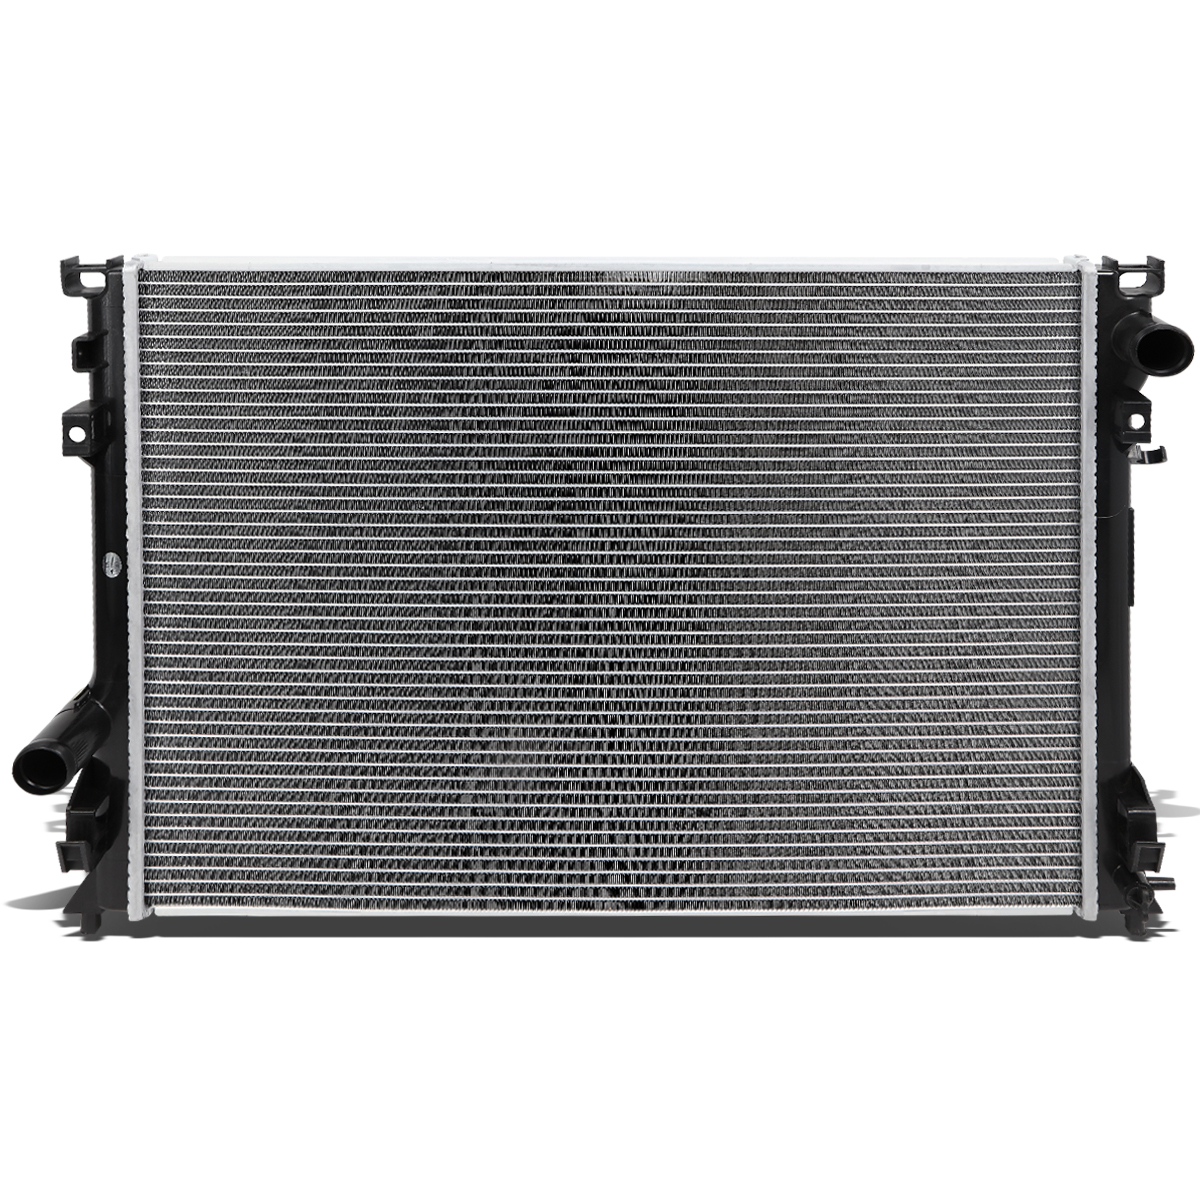 "For 2005-2008 Chrysler 300/Dodge Charger 1-7/16"" Inlet OE Style Aluminum Replacement Racing Radiator"